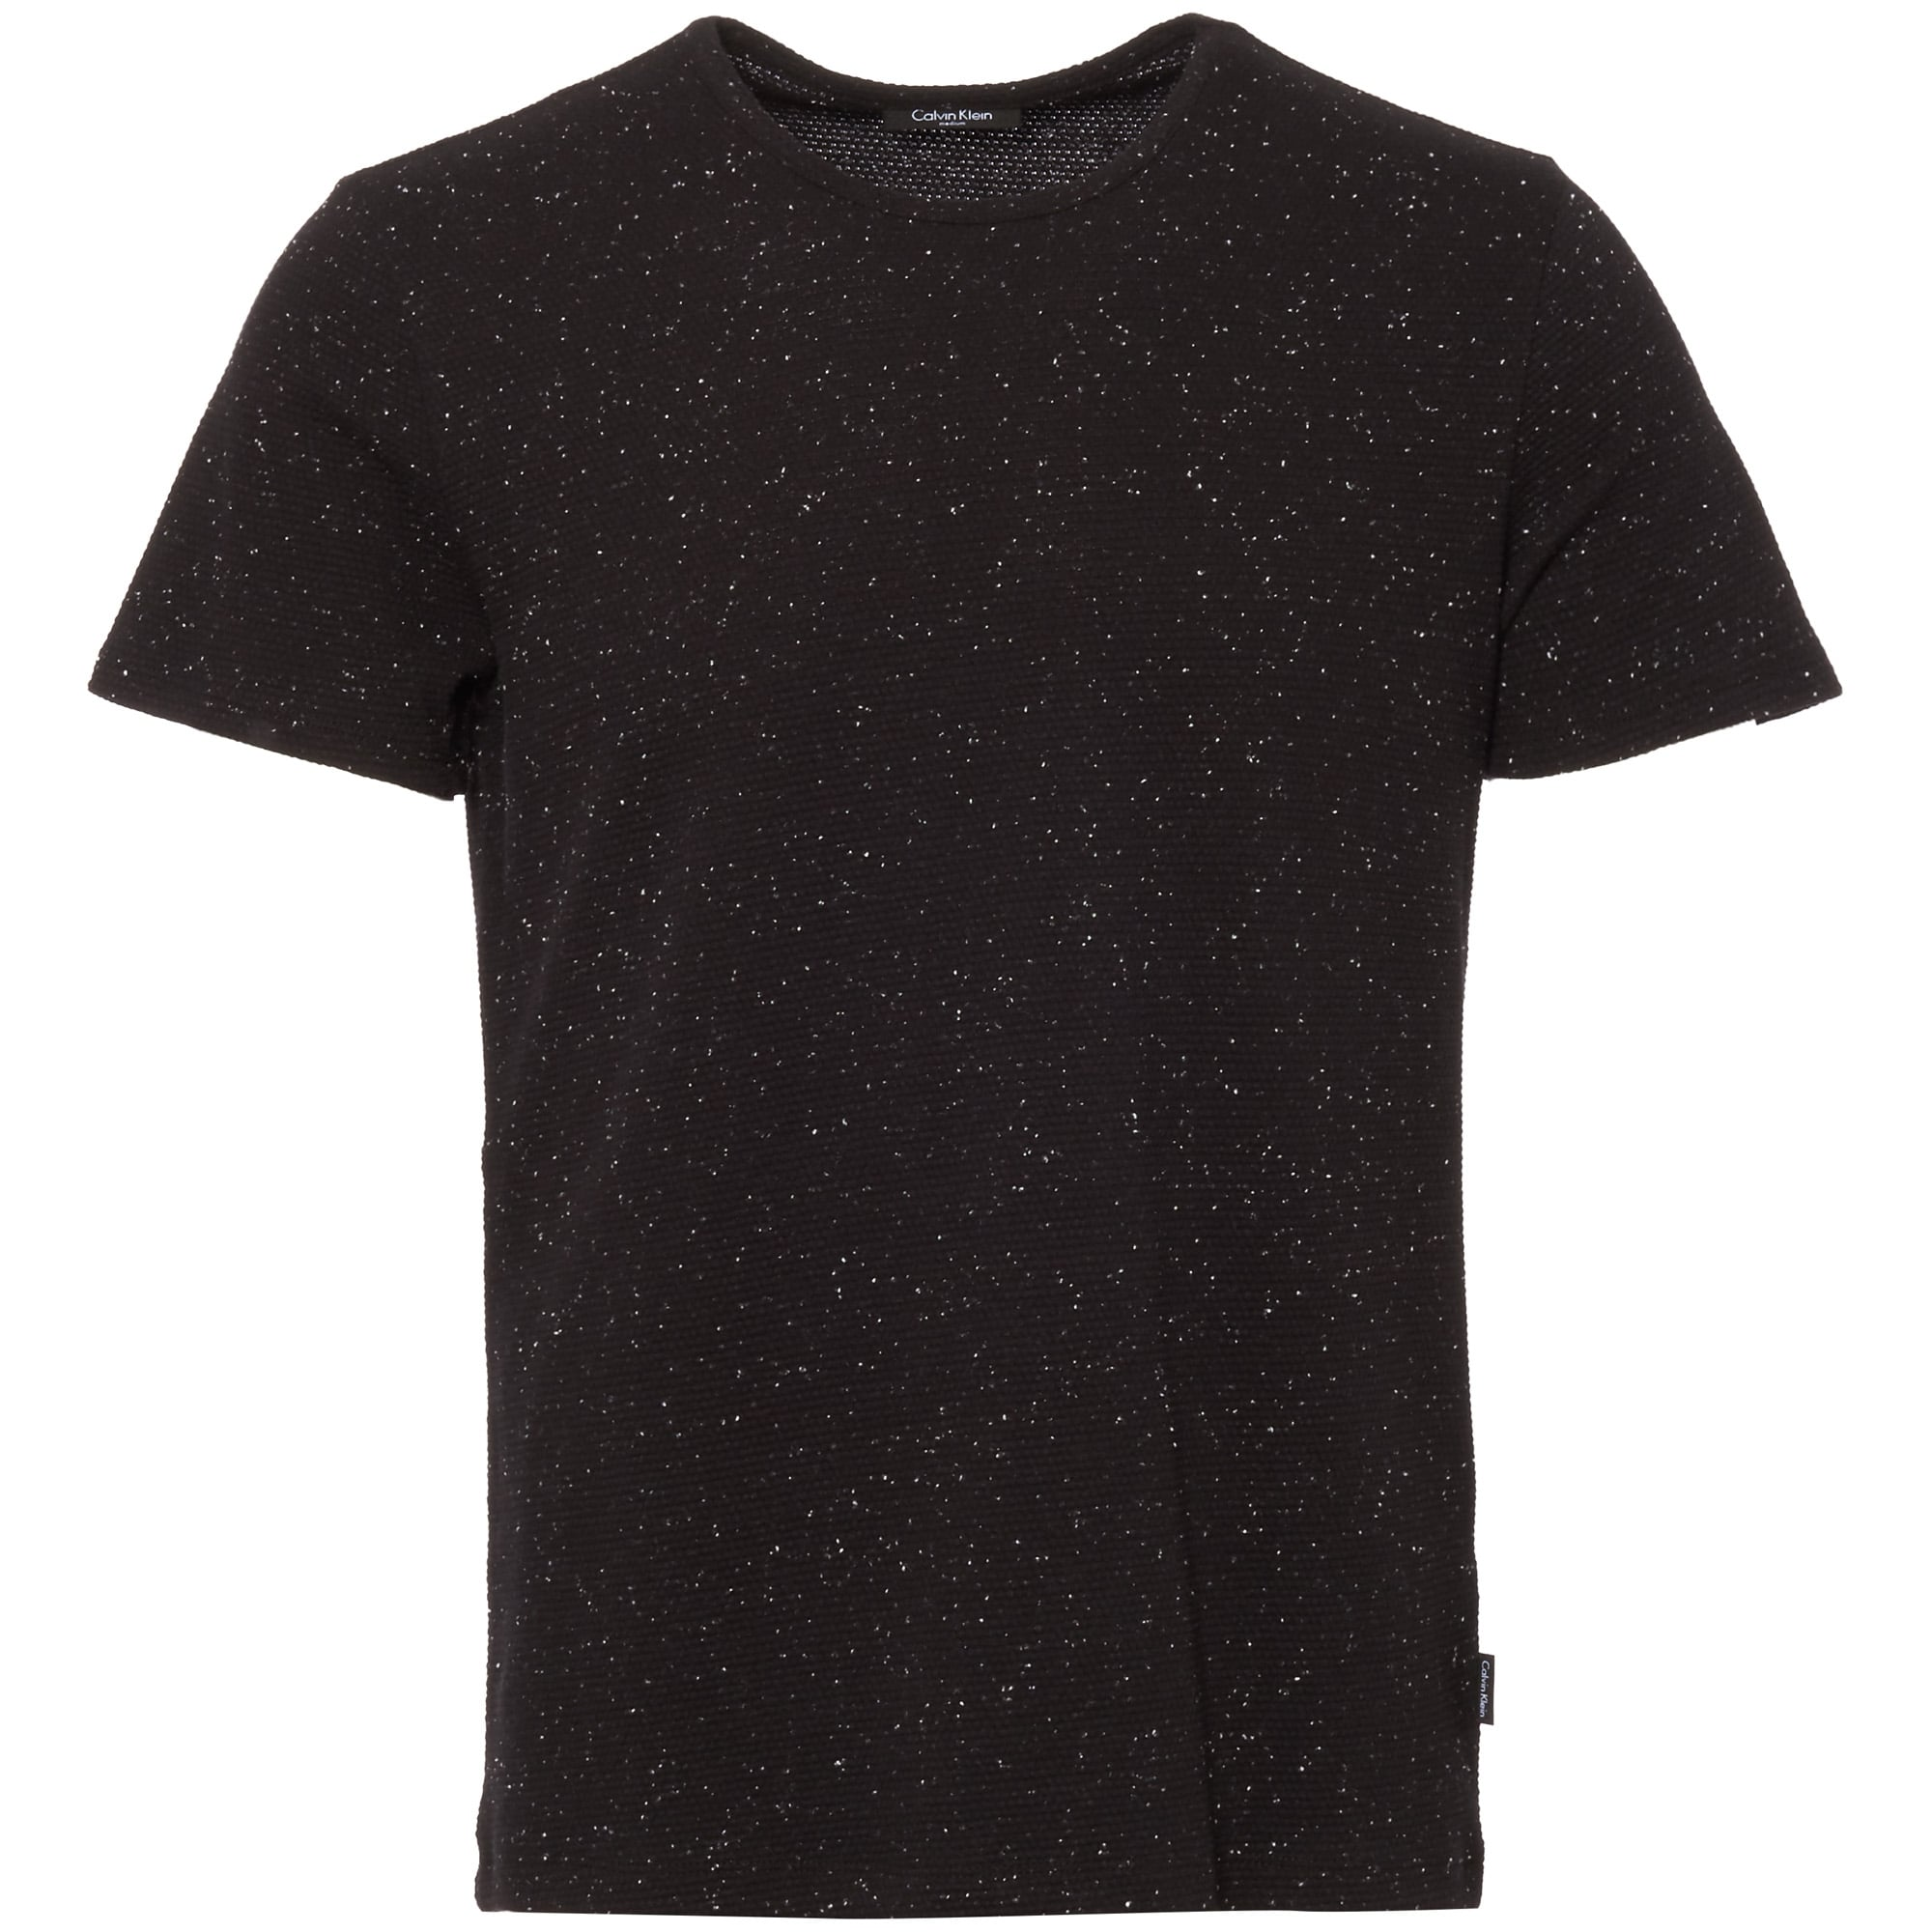 Calvin klein perfect black janeps heathered jersey t shirt for Perfect black t shirt